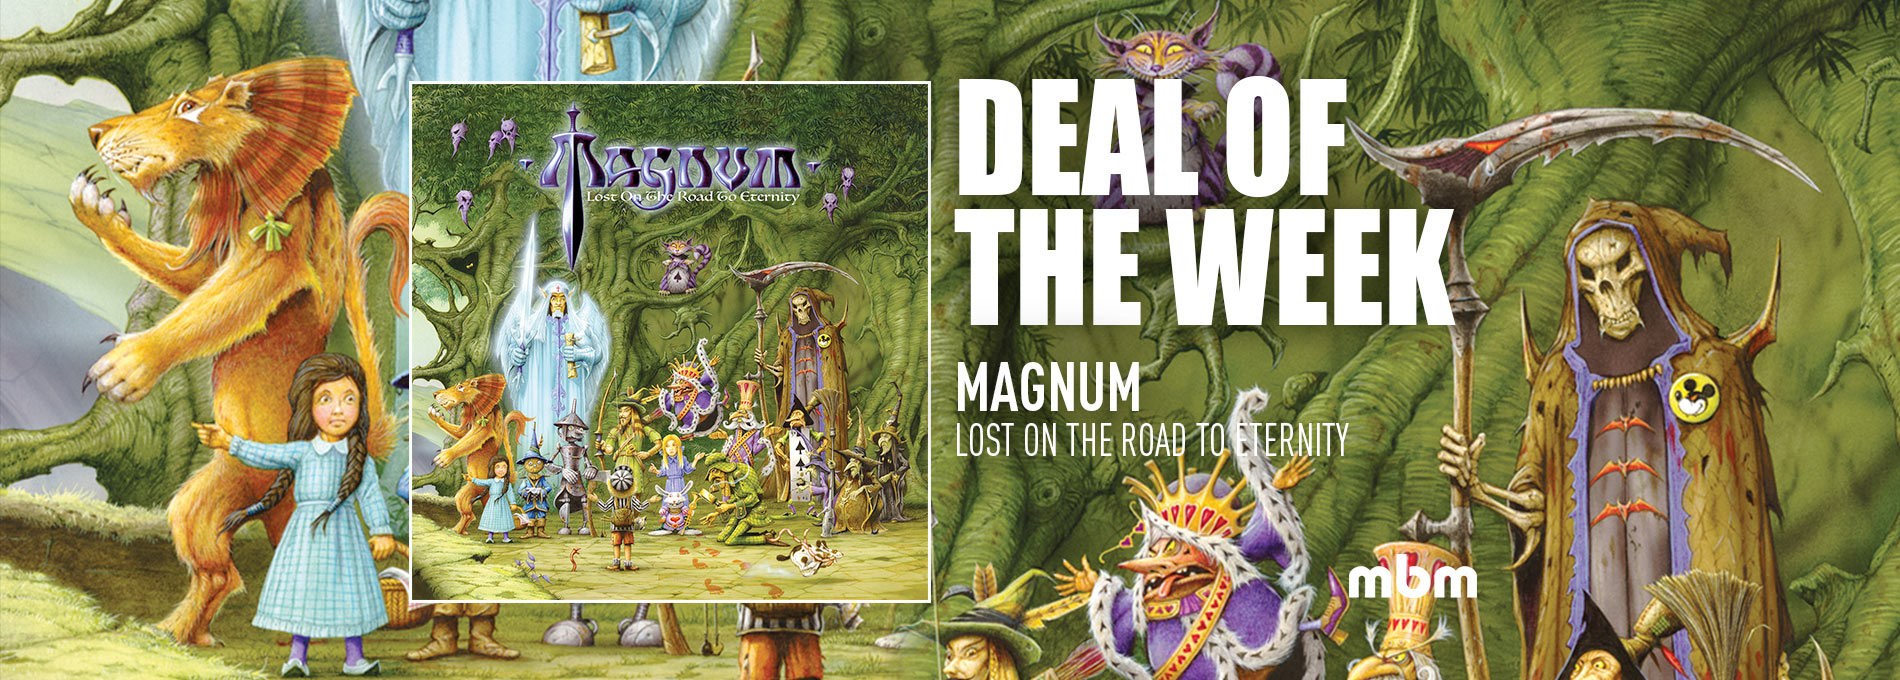 Deal Of the Week : Magnum - Lost On The Road To Eternity